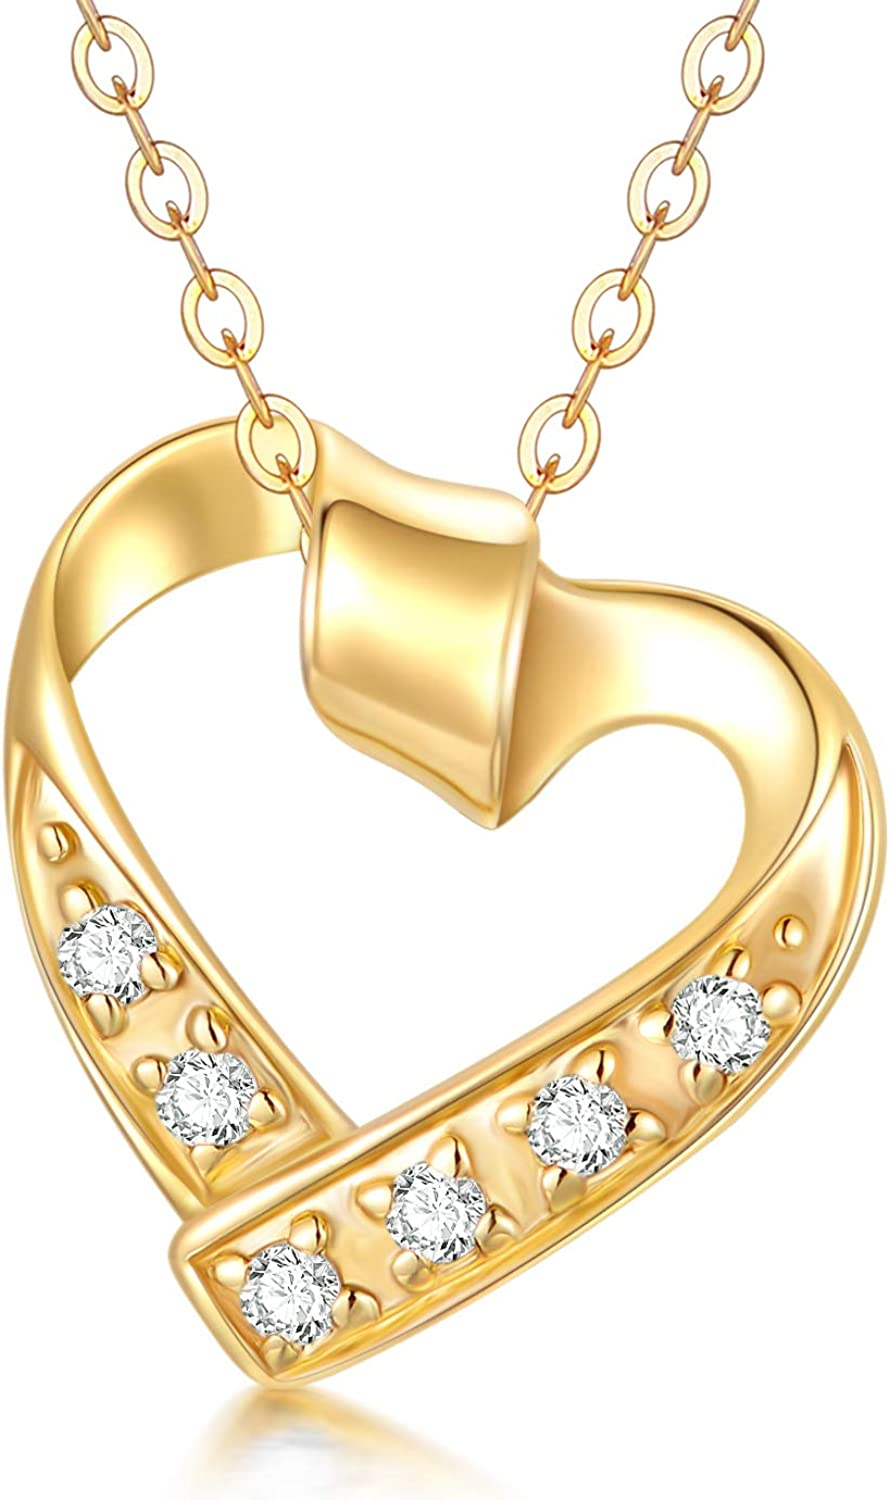 Blocaci 14K Yellow Gold Heart Pendant Necklaces for Women Girls Moissanite Pearl Necklaces Love Jewelry for Wife Daughter Mother, 16+1+1 Inch